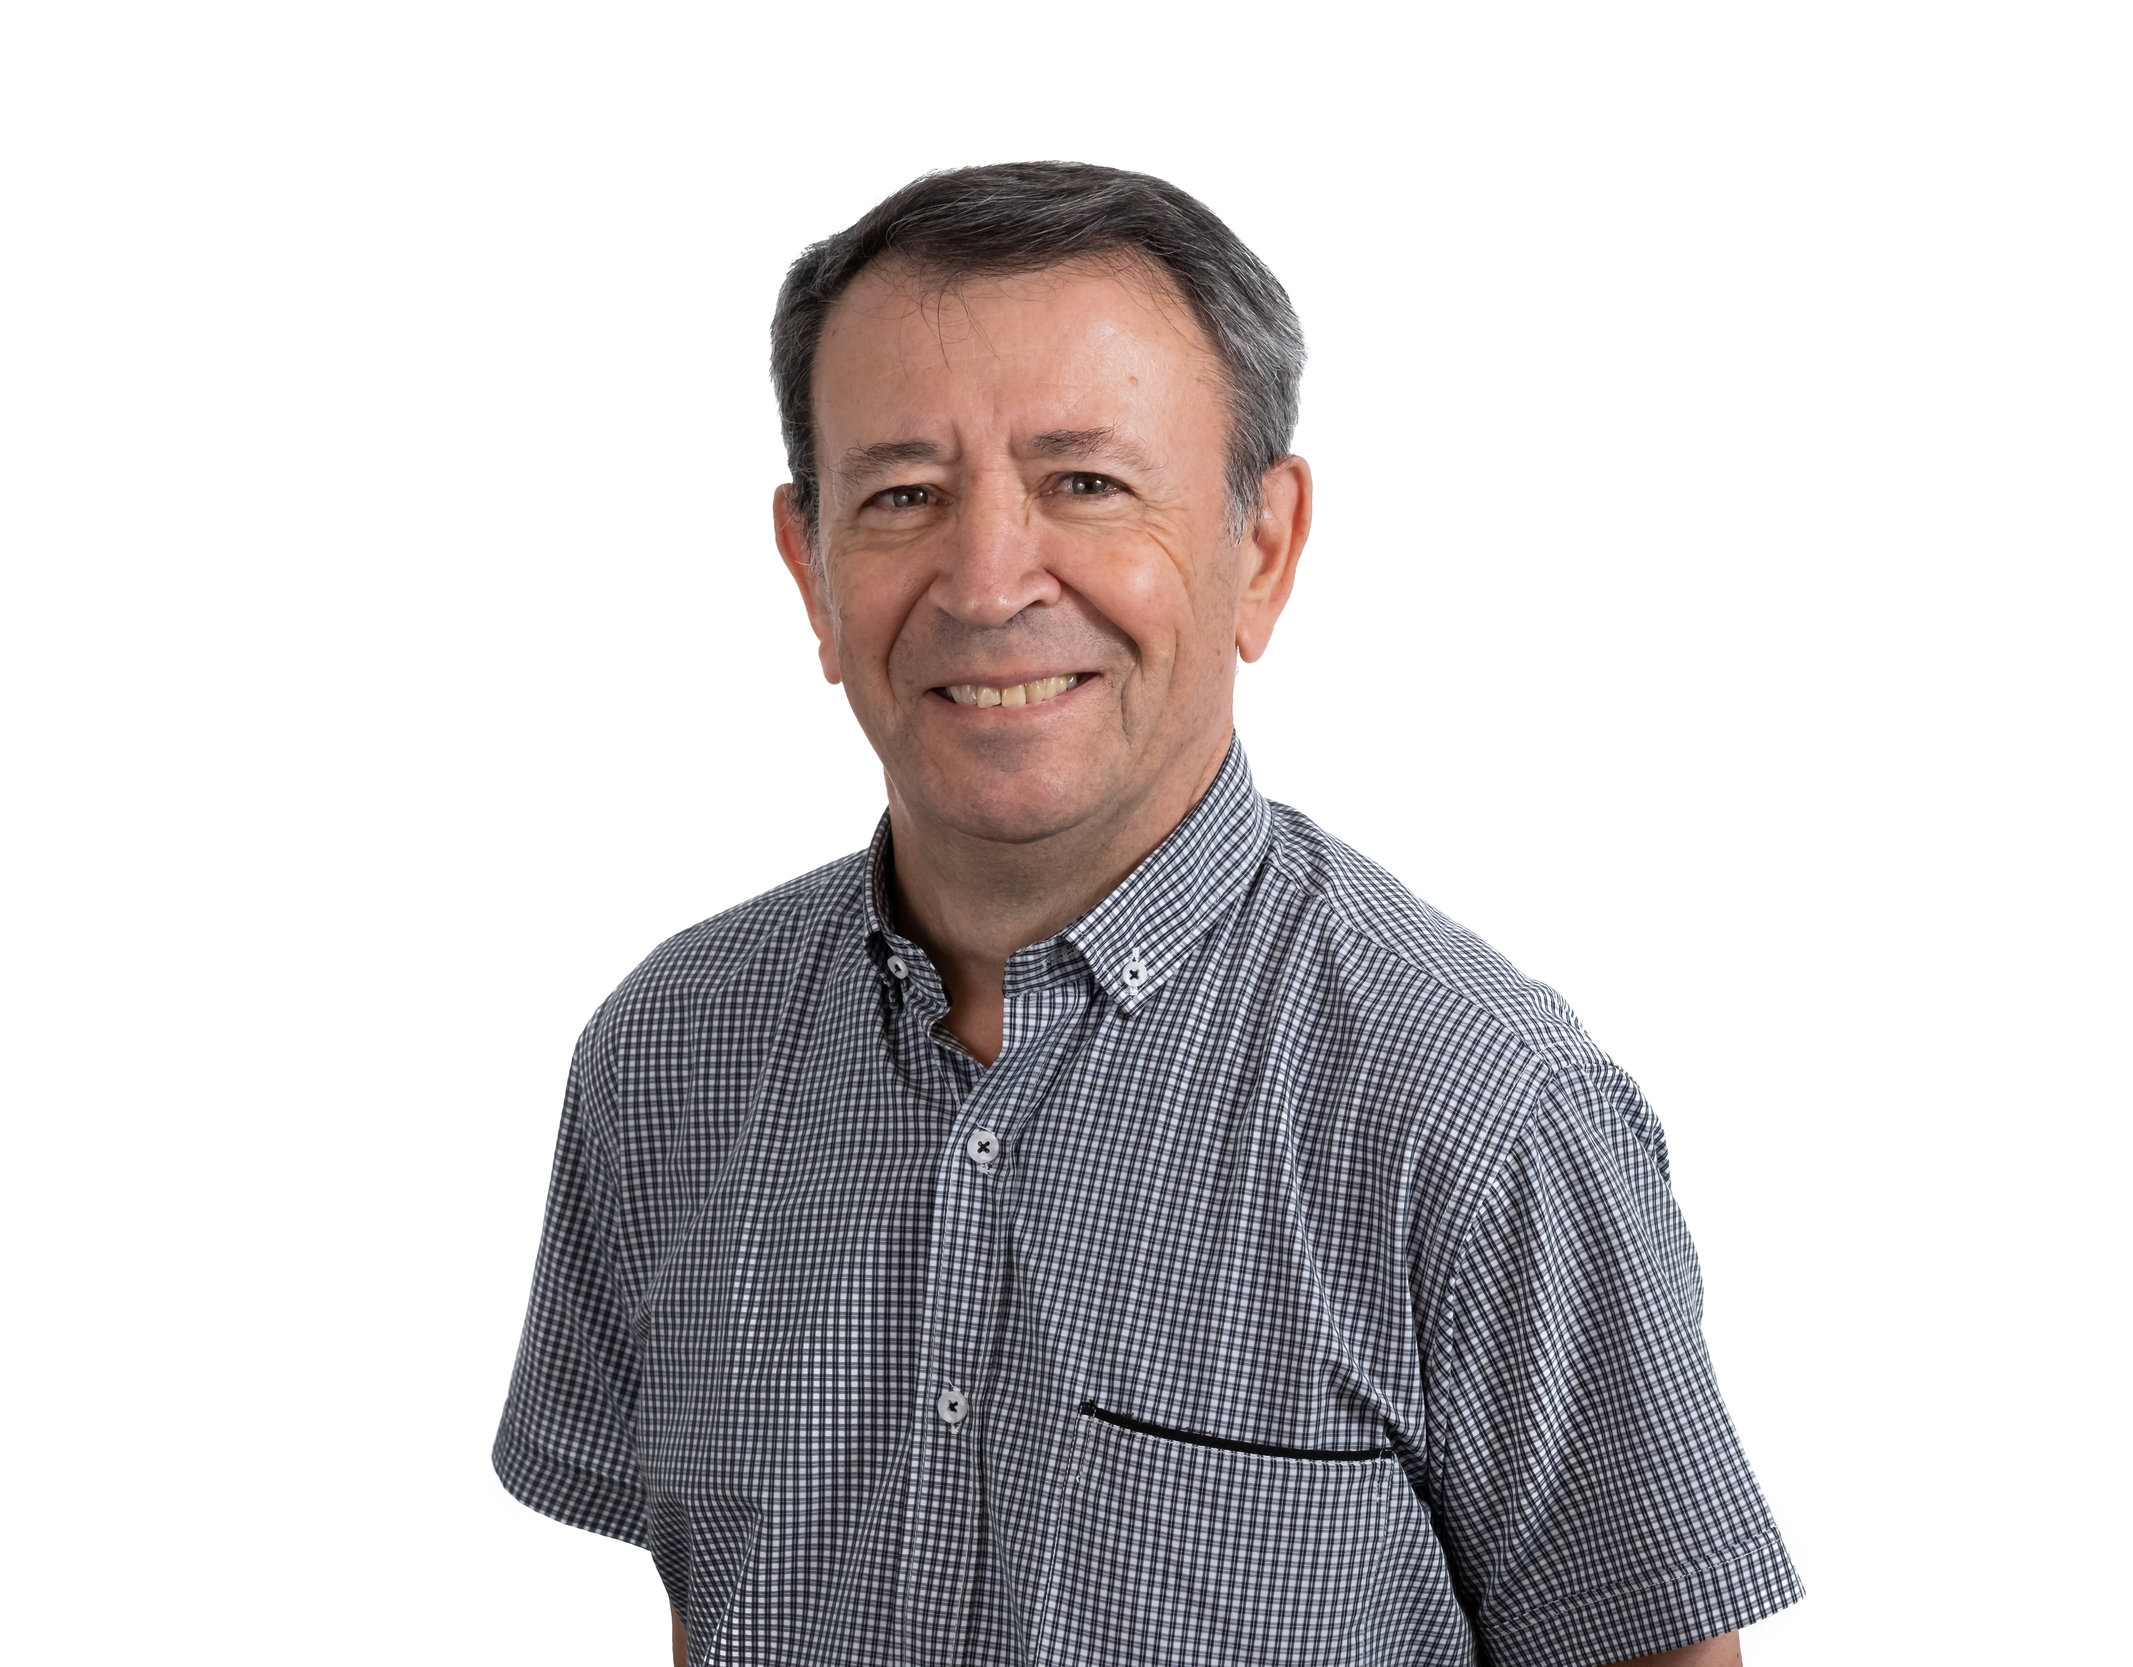 Ron has been building his whole working life. He started off gaining 3 years of valuable experience 'on the tools,' working initially as a site foreman and then as a site manager. Here, he was involved in both new-build high-rise and small-scale refurbishment projects.  He Joined Kedmor in 2017 after graduating from Ariel University with a degree in Civil Engineering with Construction Management.  Well-versed in construction methodologies and procedures, Ron is able to coordinate multidisciplinary teams to achieve results and ensure projects are delivered on time.  Despite being chained to a desk, Ron still enjoys time on site and is very client focused.  He enjoys throwing frisbees around the beach and going to concerts